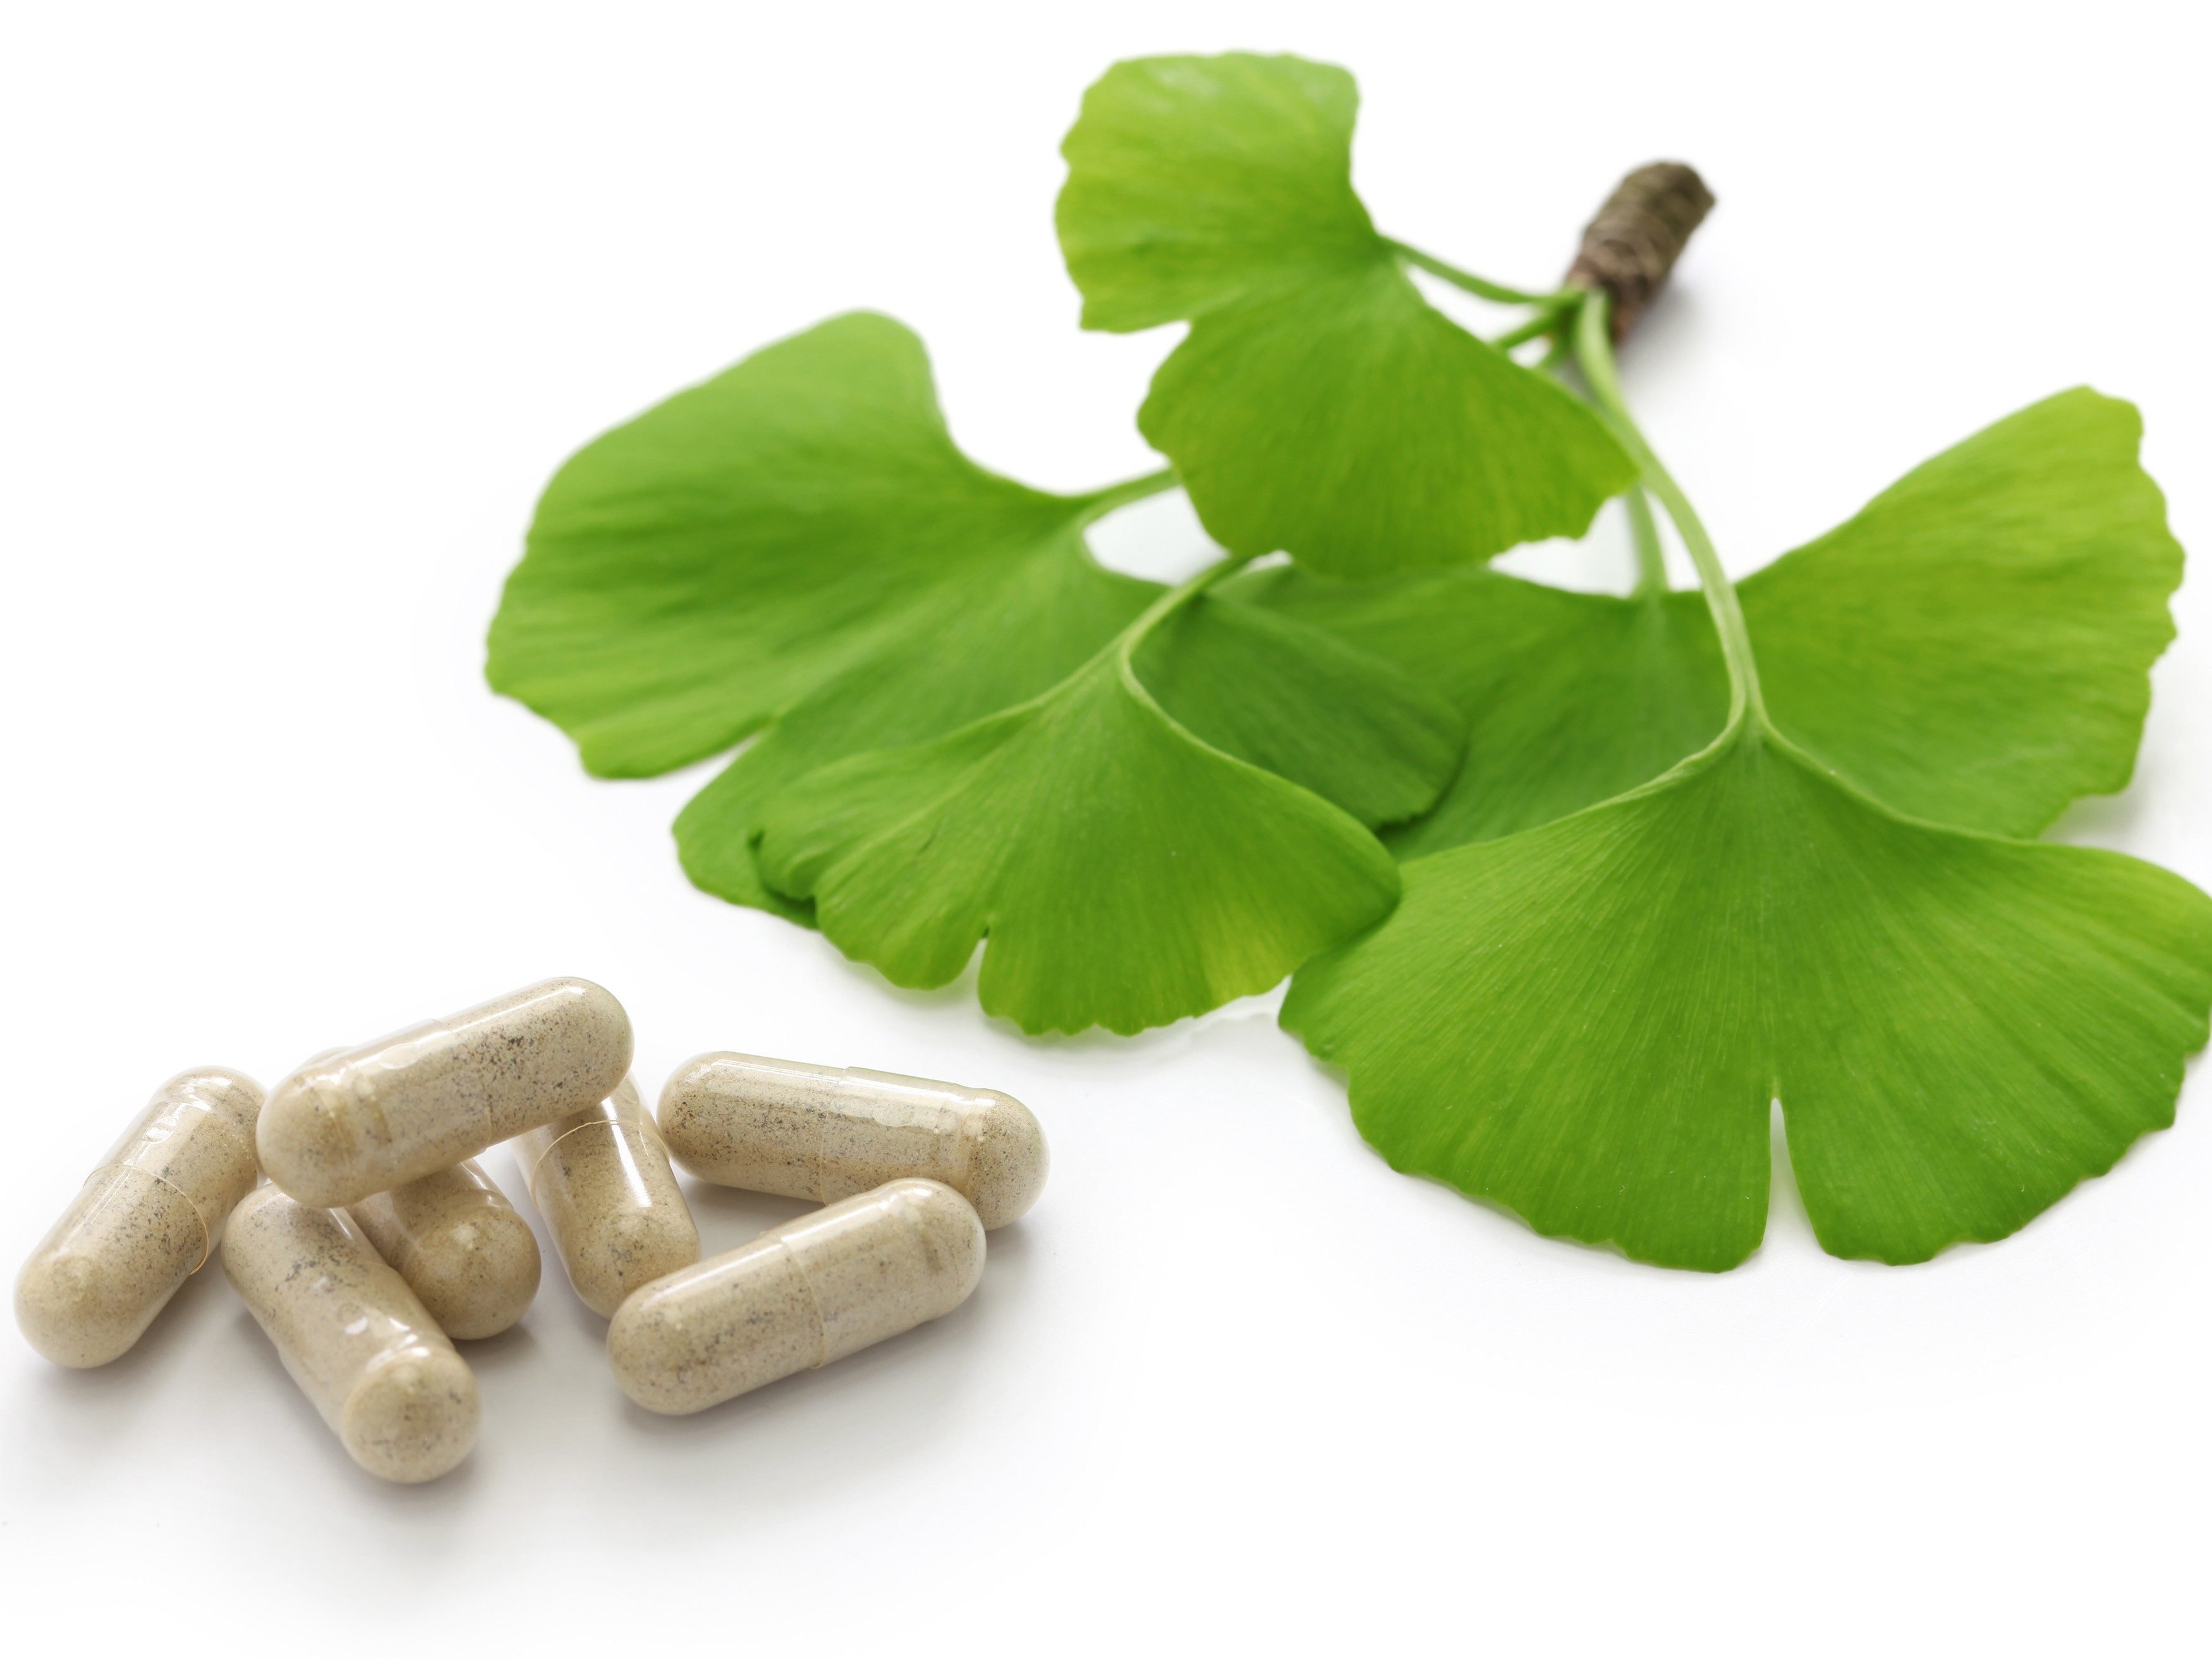 3. Try ginkgo supplements